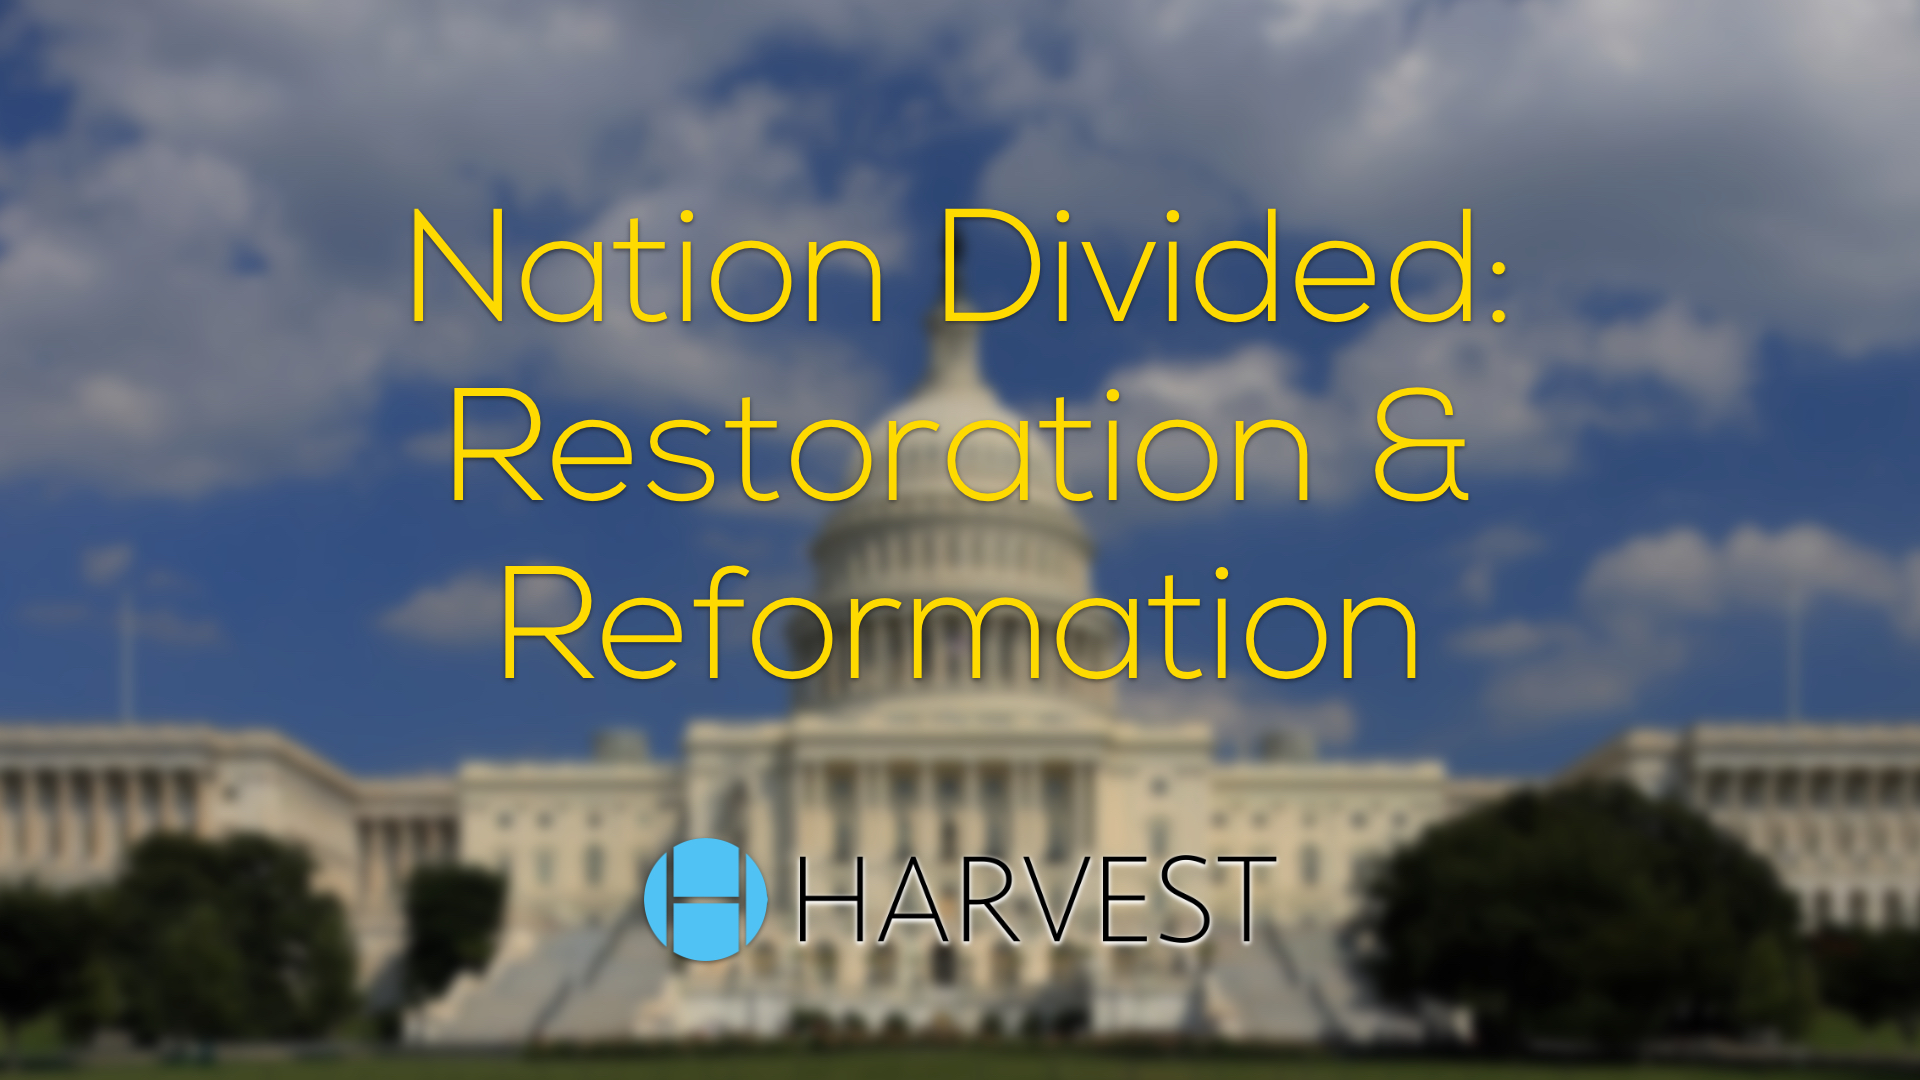 Nation Divided: A Message of Restoration and Reformation